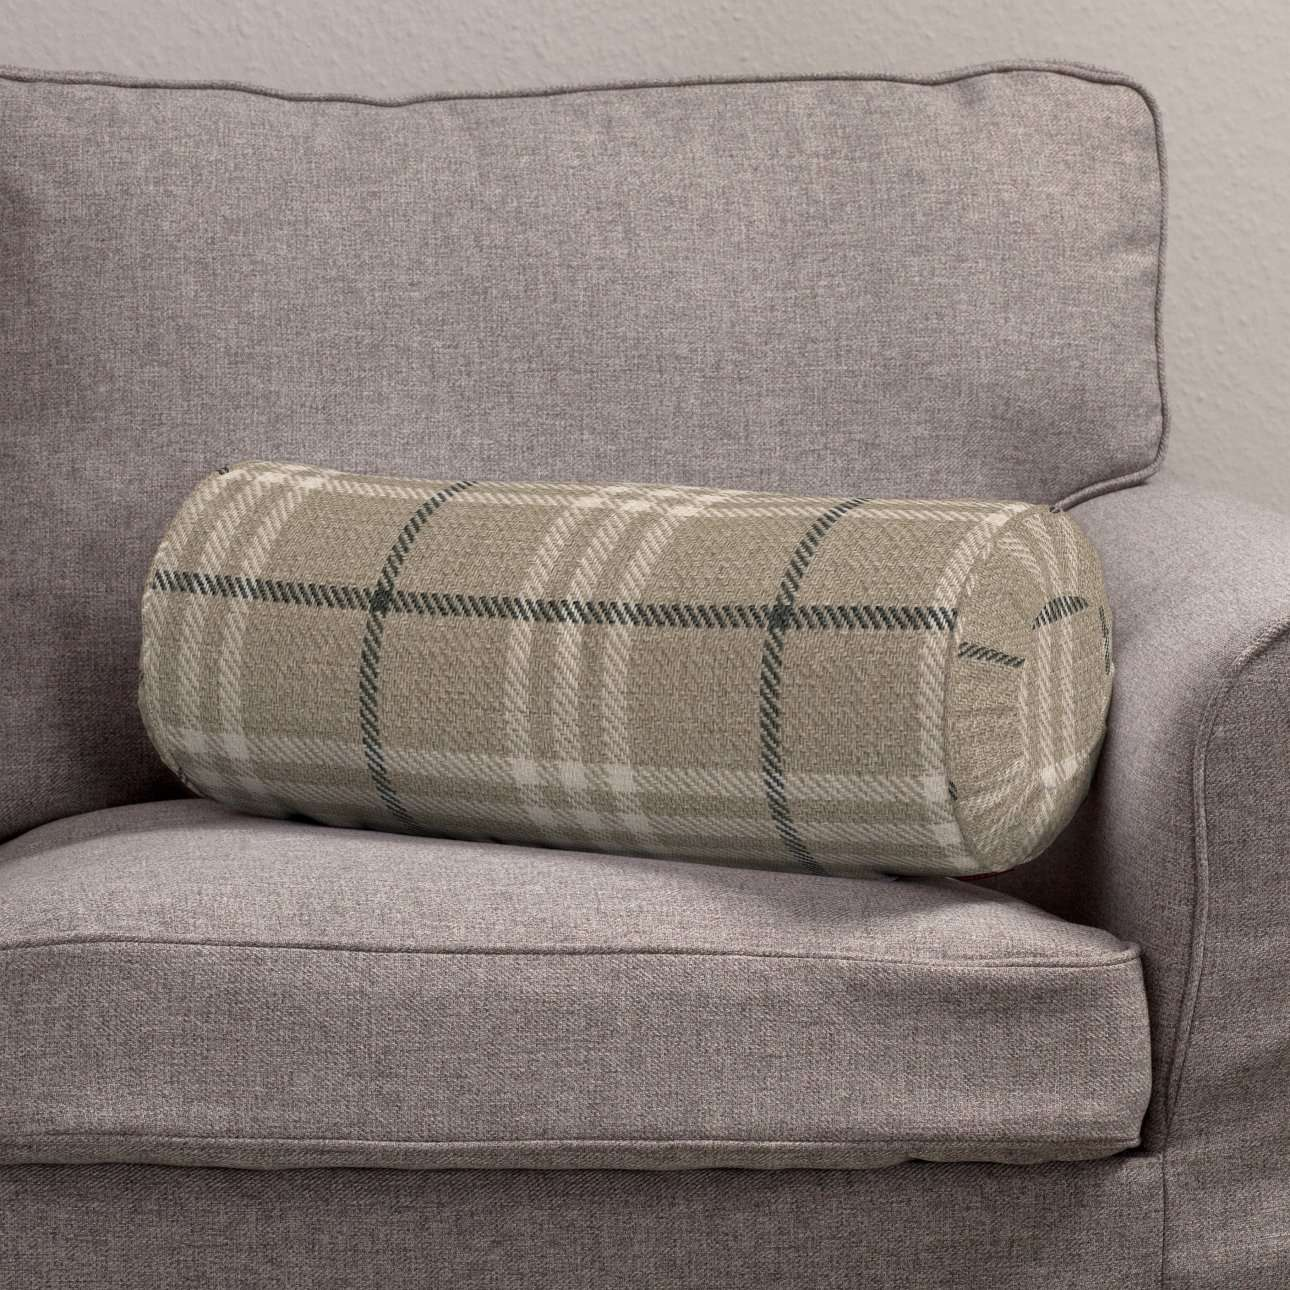 Bolster cushion with pleats Ø 20 x 50 cm (8 x 20 inch) in collection Edinburgh, fabric: 703-11